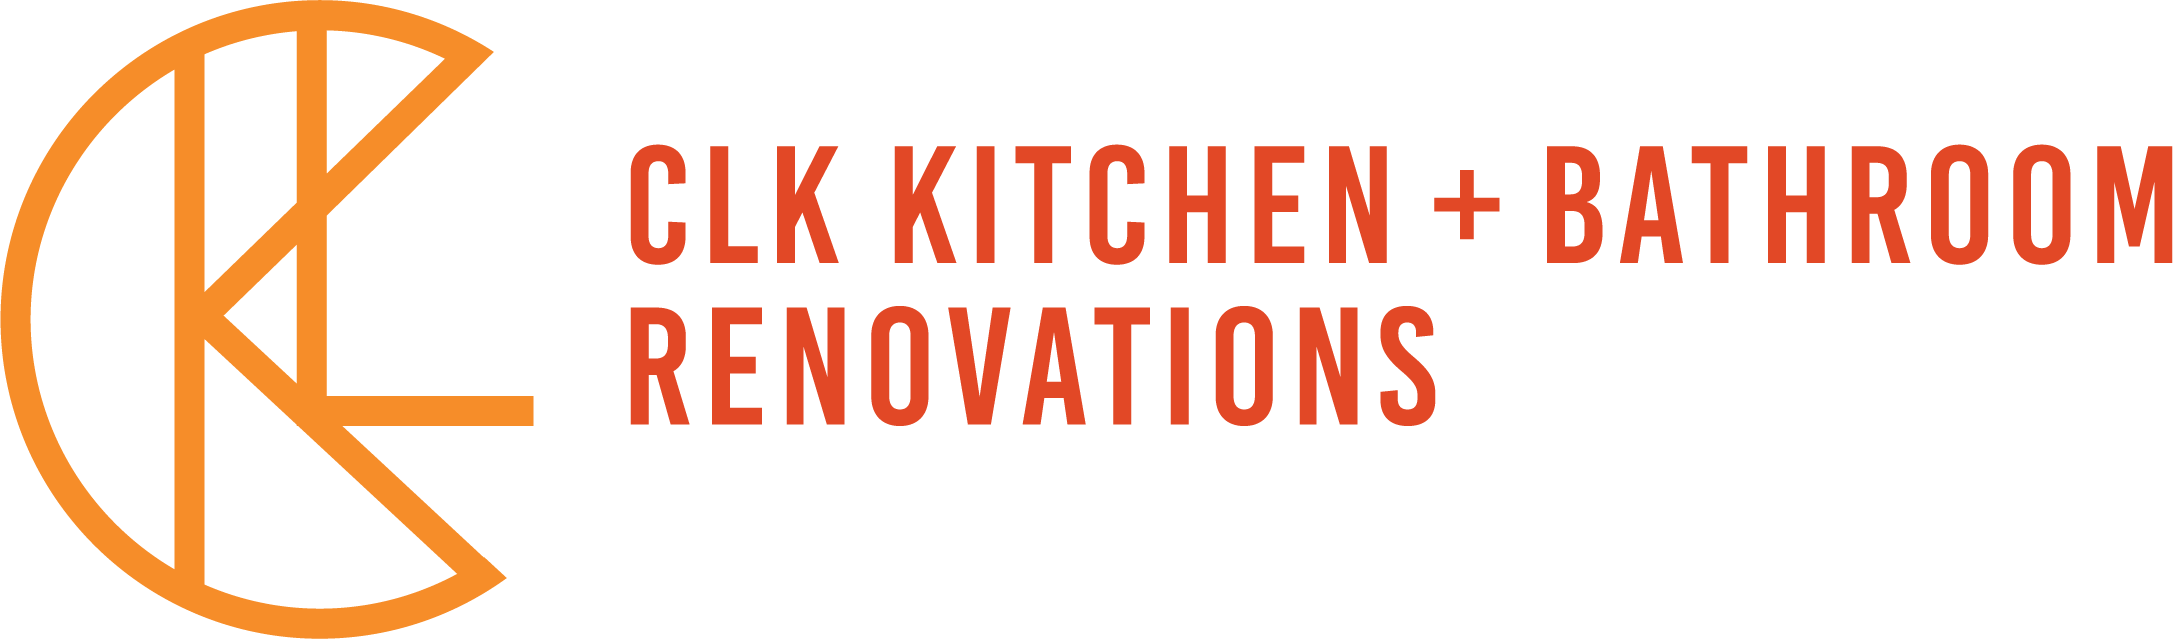 CLK Kitchen and Bathroom Renovations